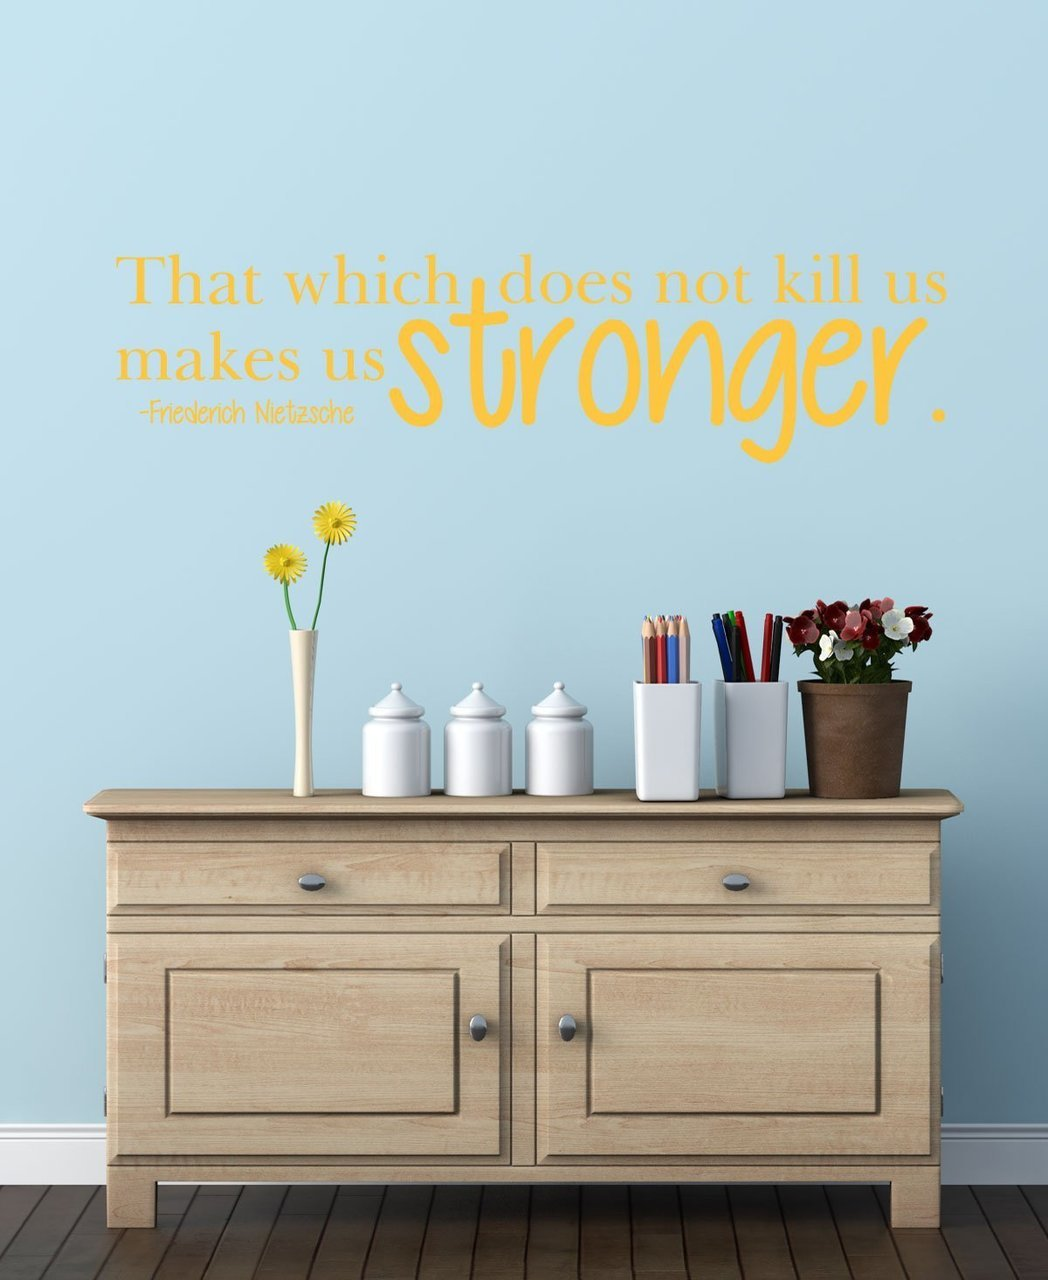 Quote Wall Decals - That Which Does Not Kill Us Makes Us Stronger - Friedrich Nietzsche